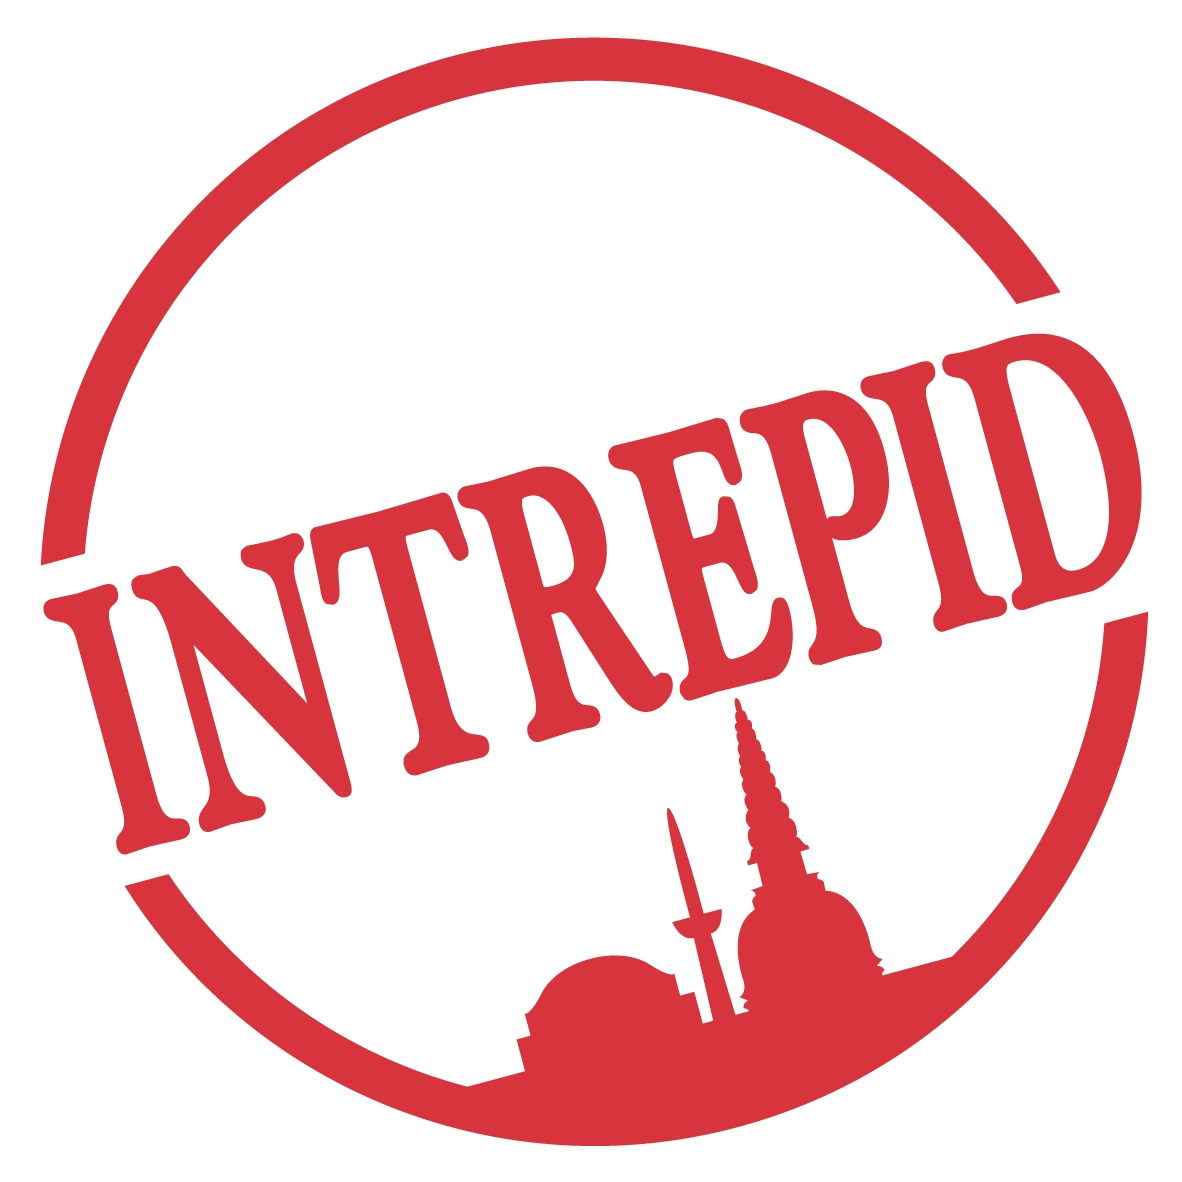 Intrepid-logo_RGB